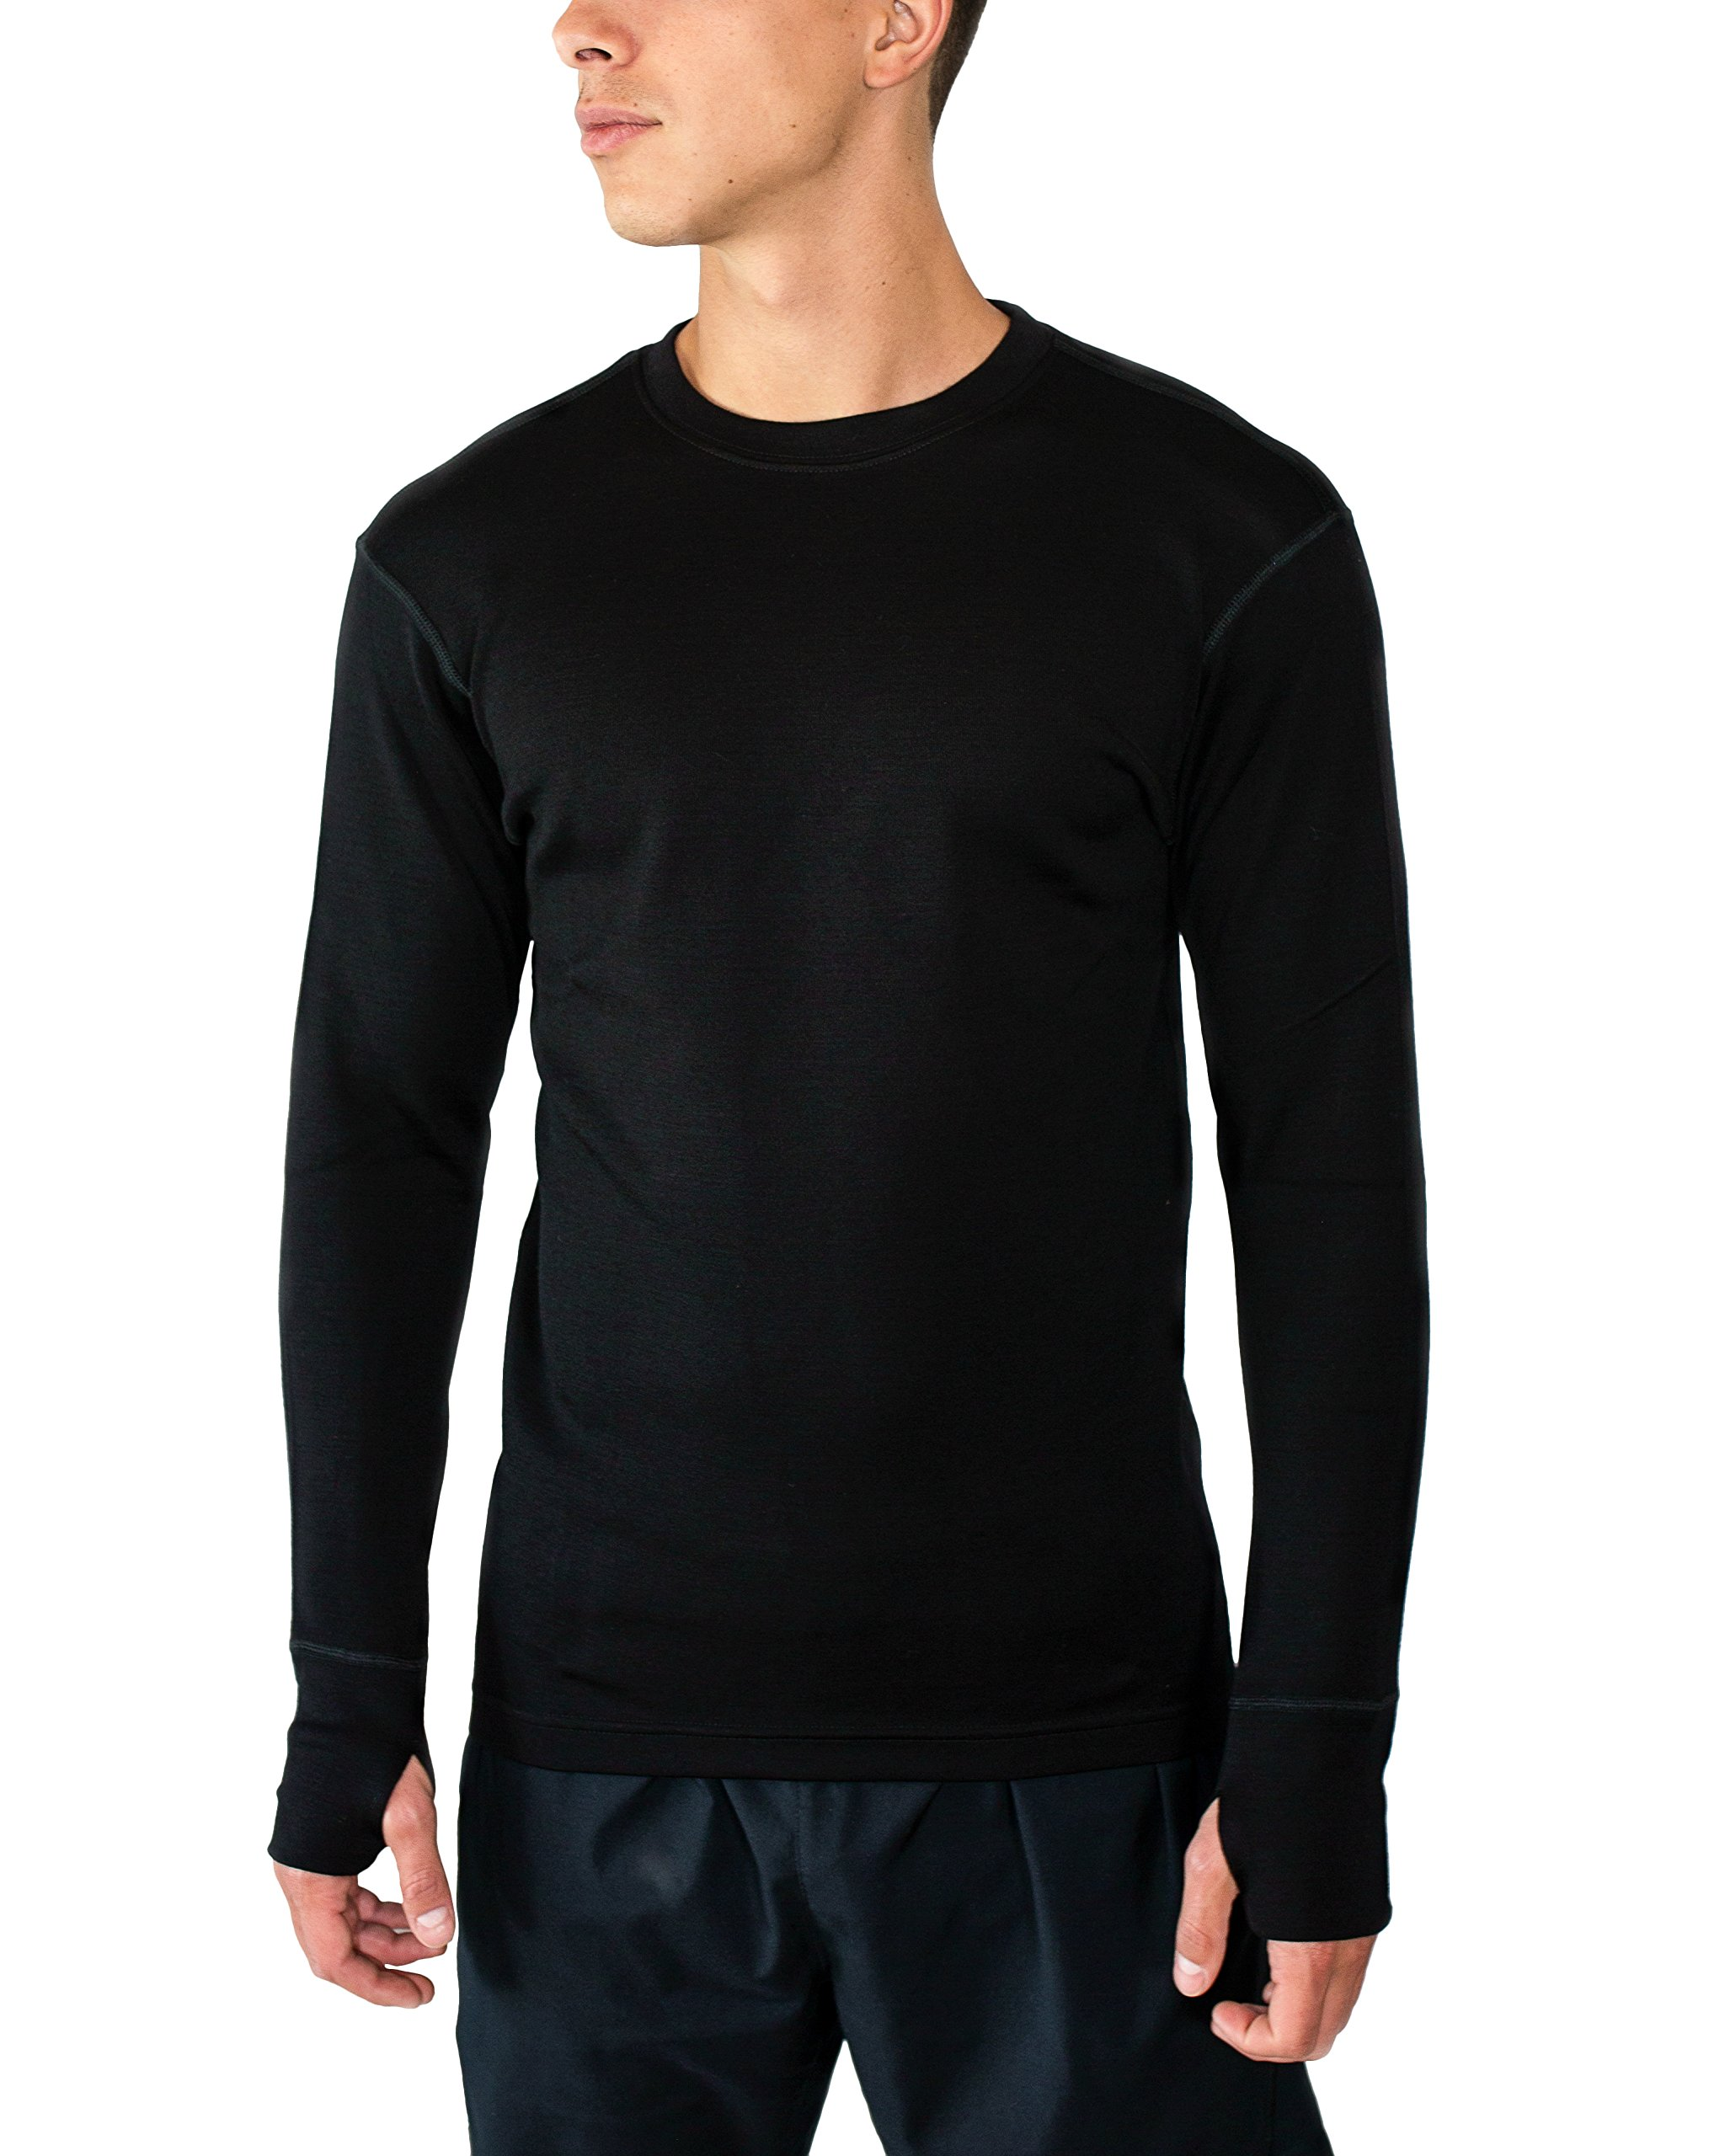 Woolx Glacier - Men's Merino Wool Base Layer Top -  Heavyweight Baselayer Crew Shirt For Extreme Warmth - SML - BLK